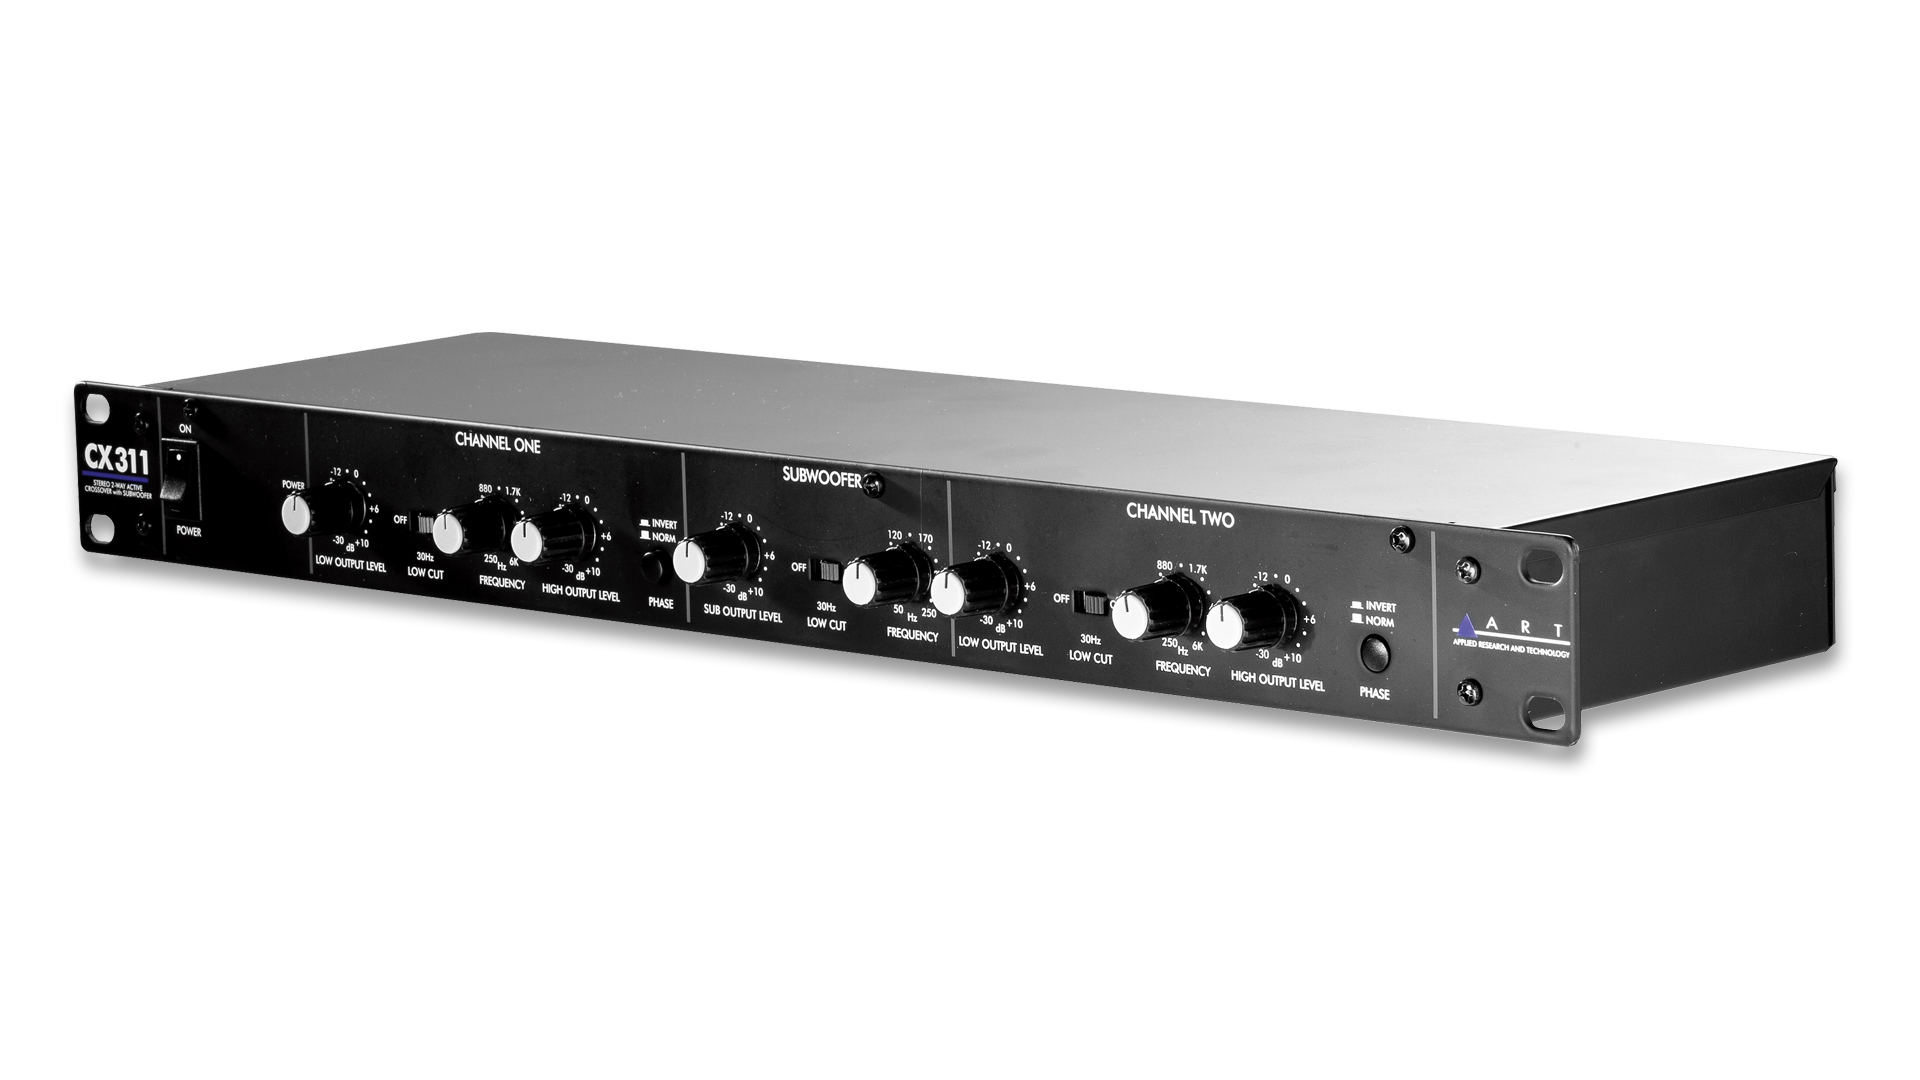 Cx311 2way Crossover With Subwoofer Out Art Pro Audio Elimination Of Common Signal From Stereo Overview Key Features Downloads